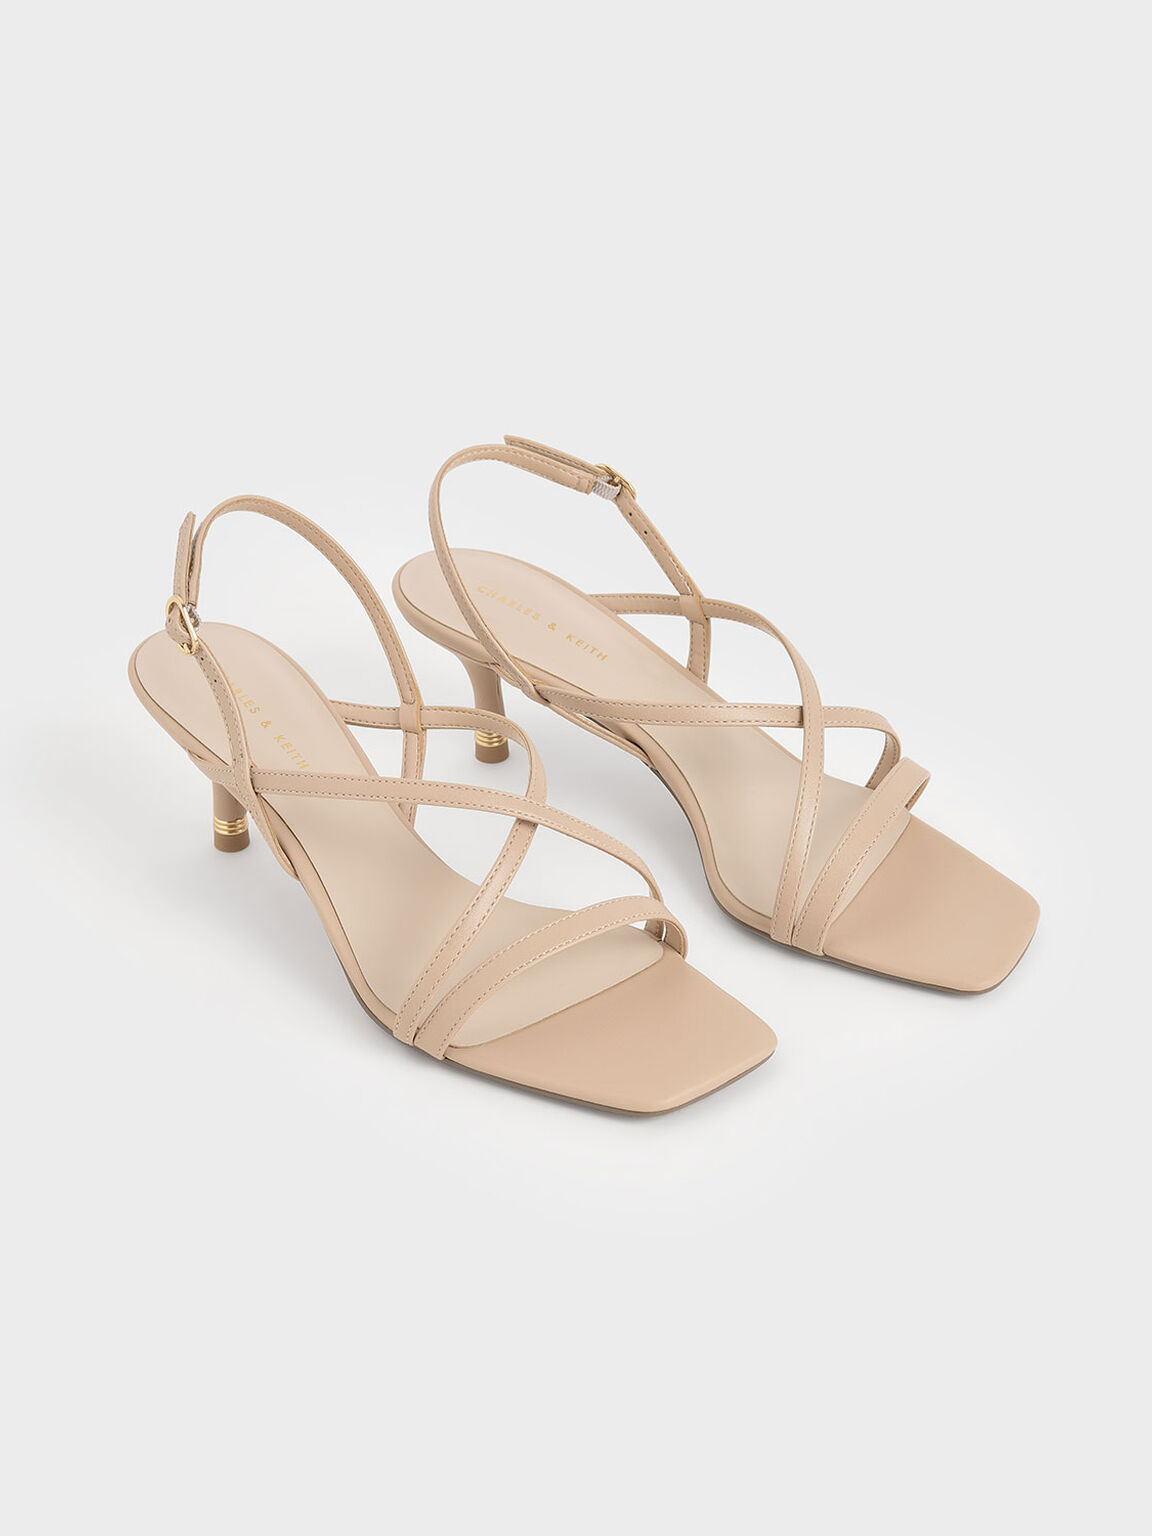 Strappy Slingback Sandals, Nude, hi-res